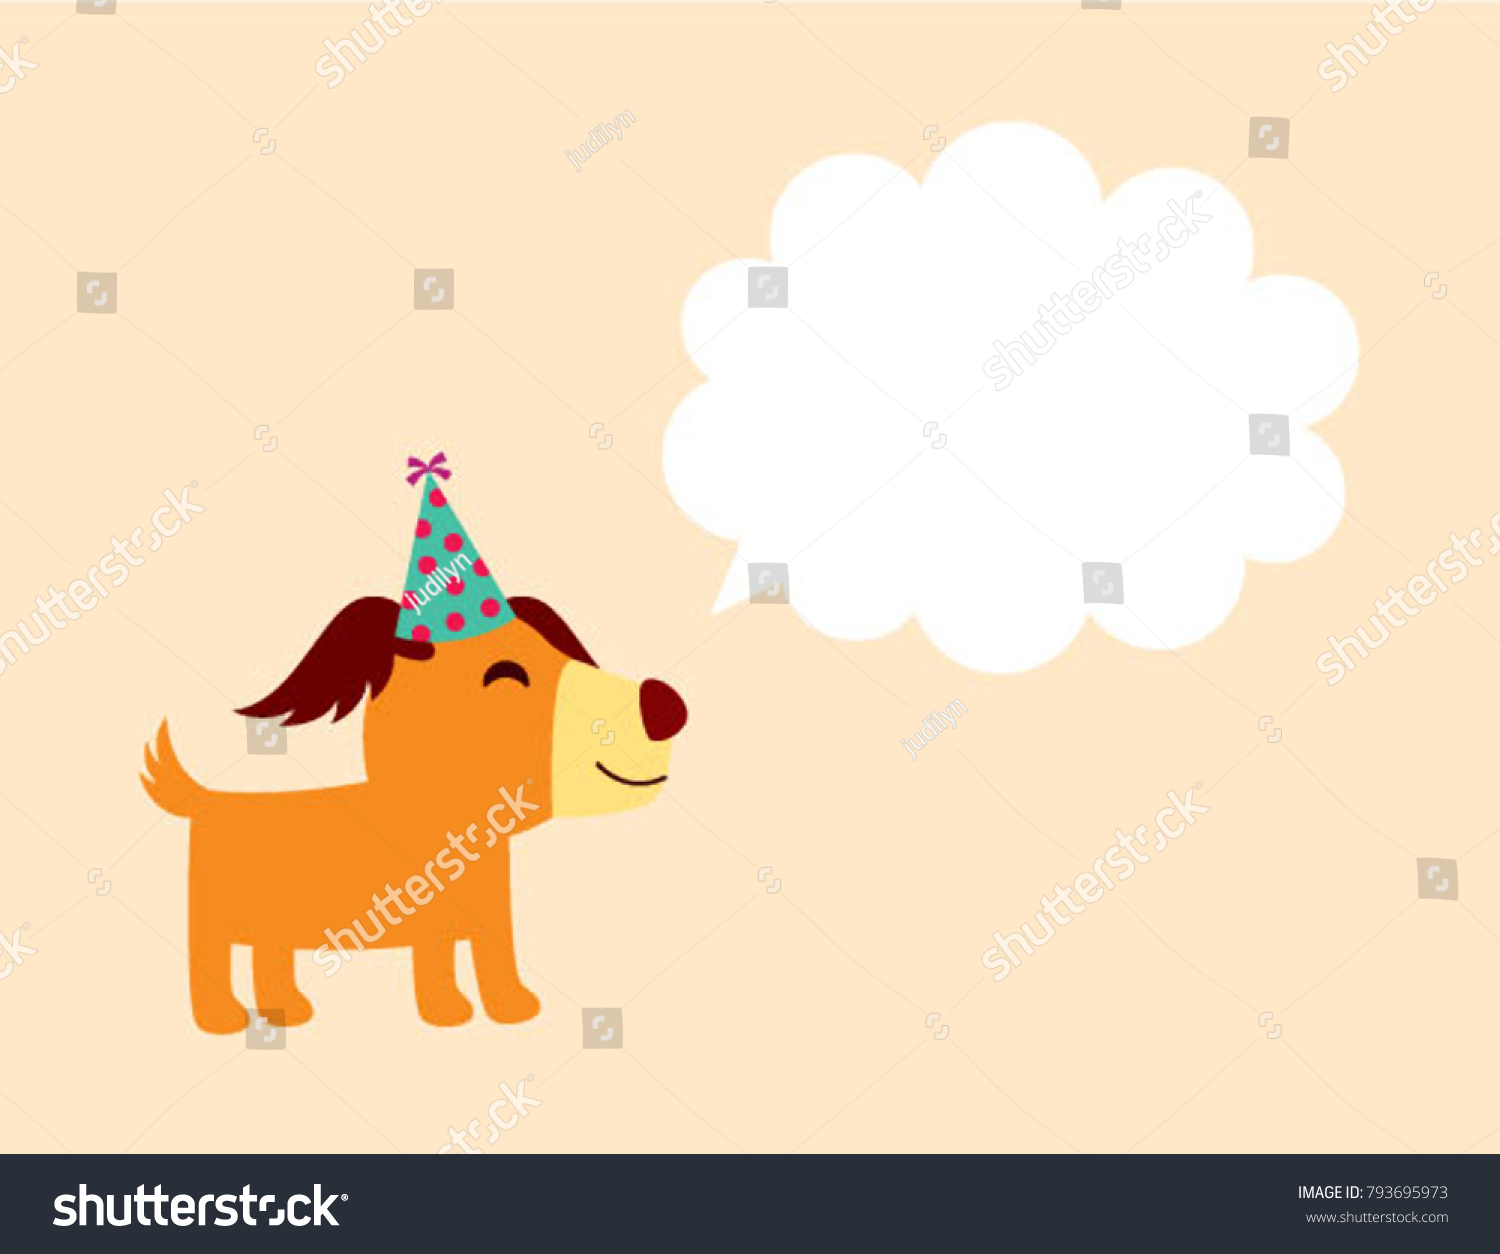 Cute happy puppy dog birthday greeting stock vector 793695973 cute happy puppy dog birthday greeting card vector kristyandbryce Choice Image